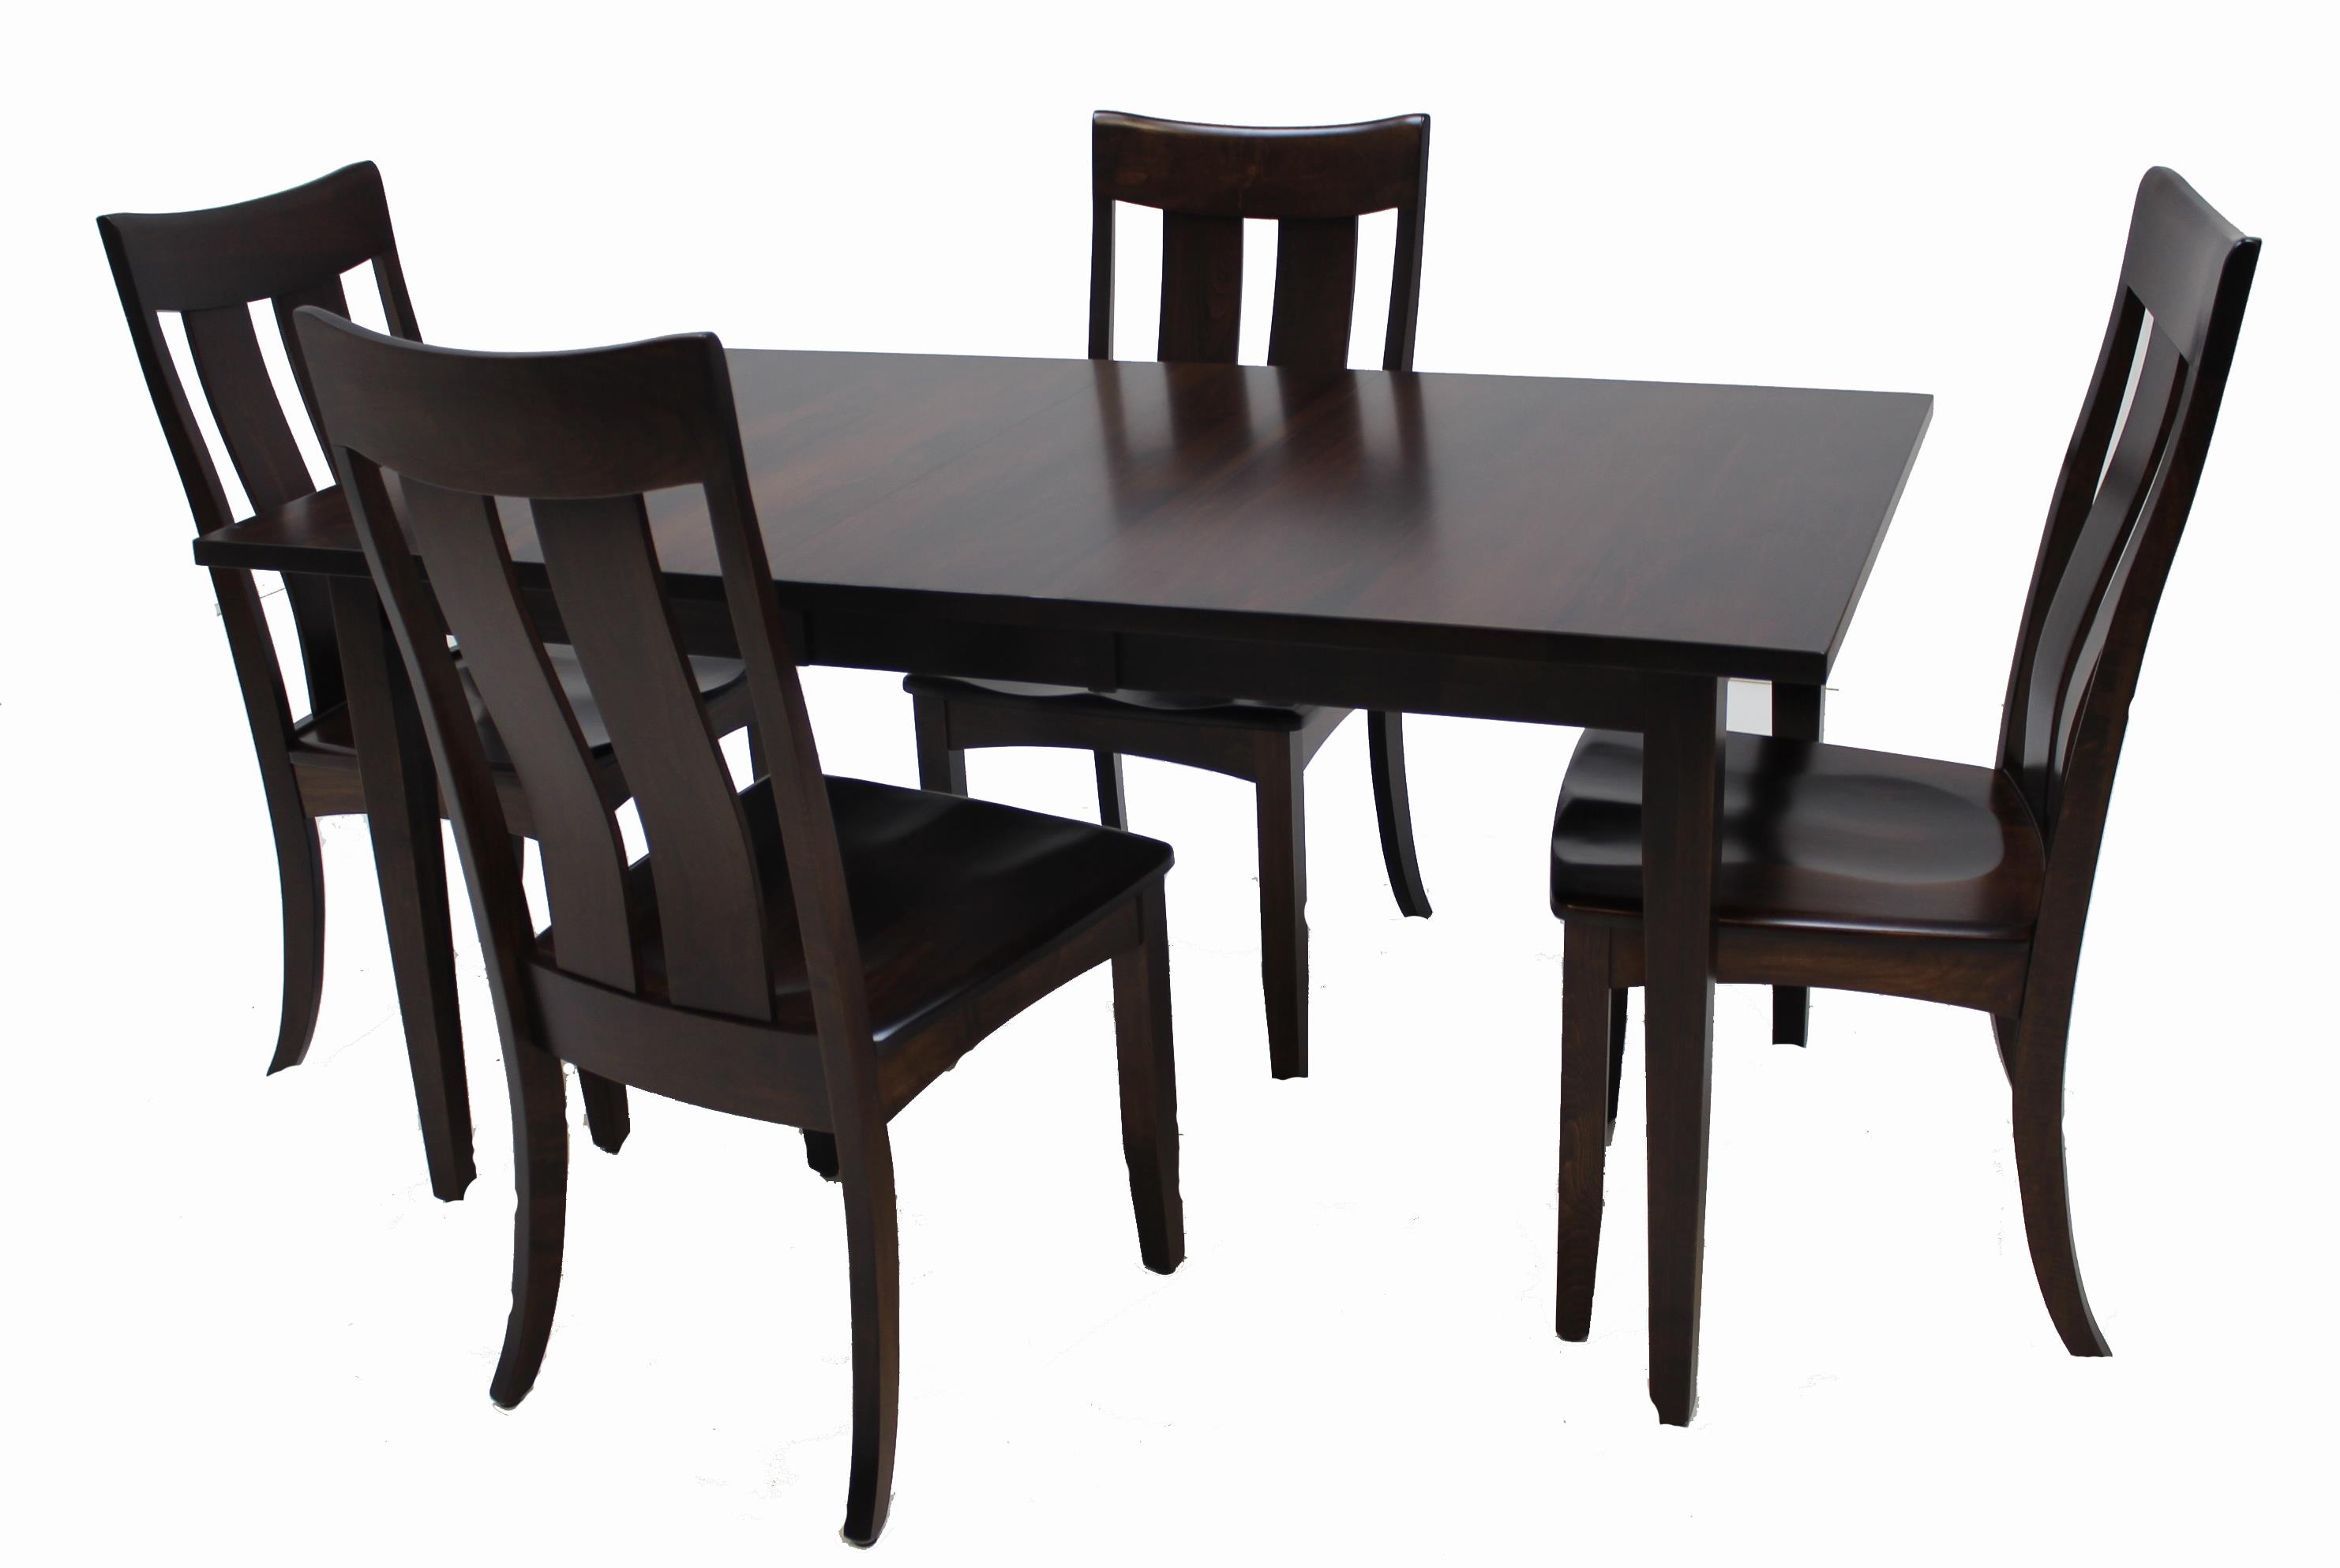 Trailway Wood ALT3648 5-Piece Dining Set - Item Number: ALT3648